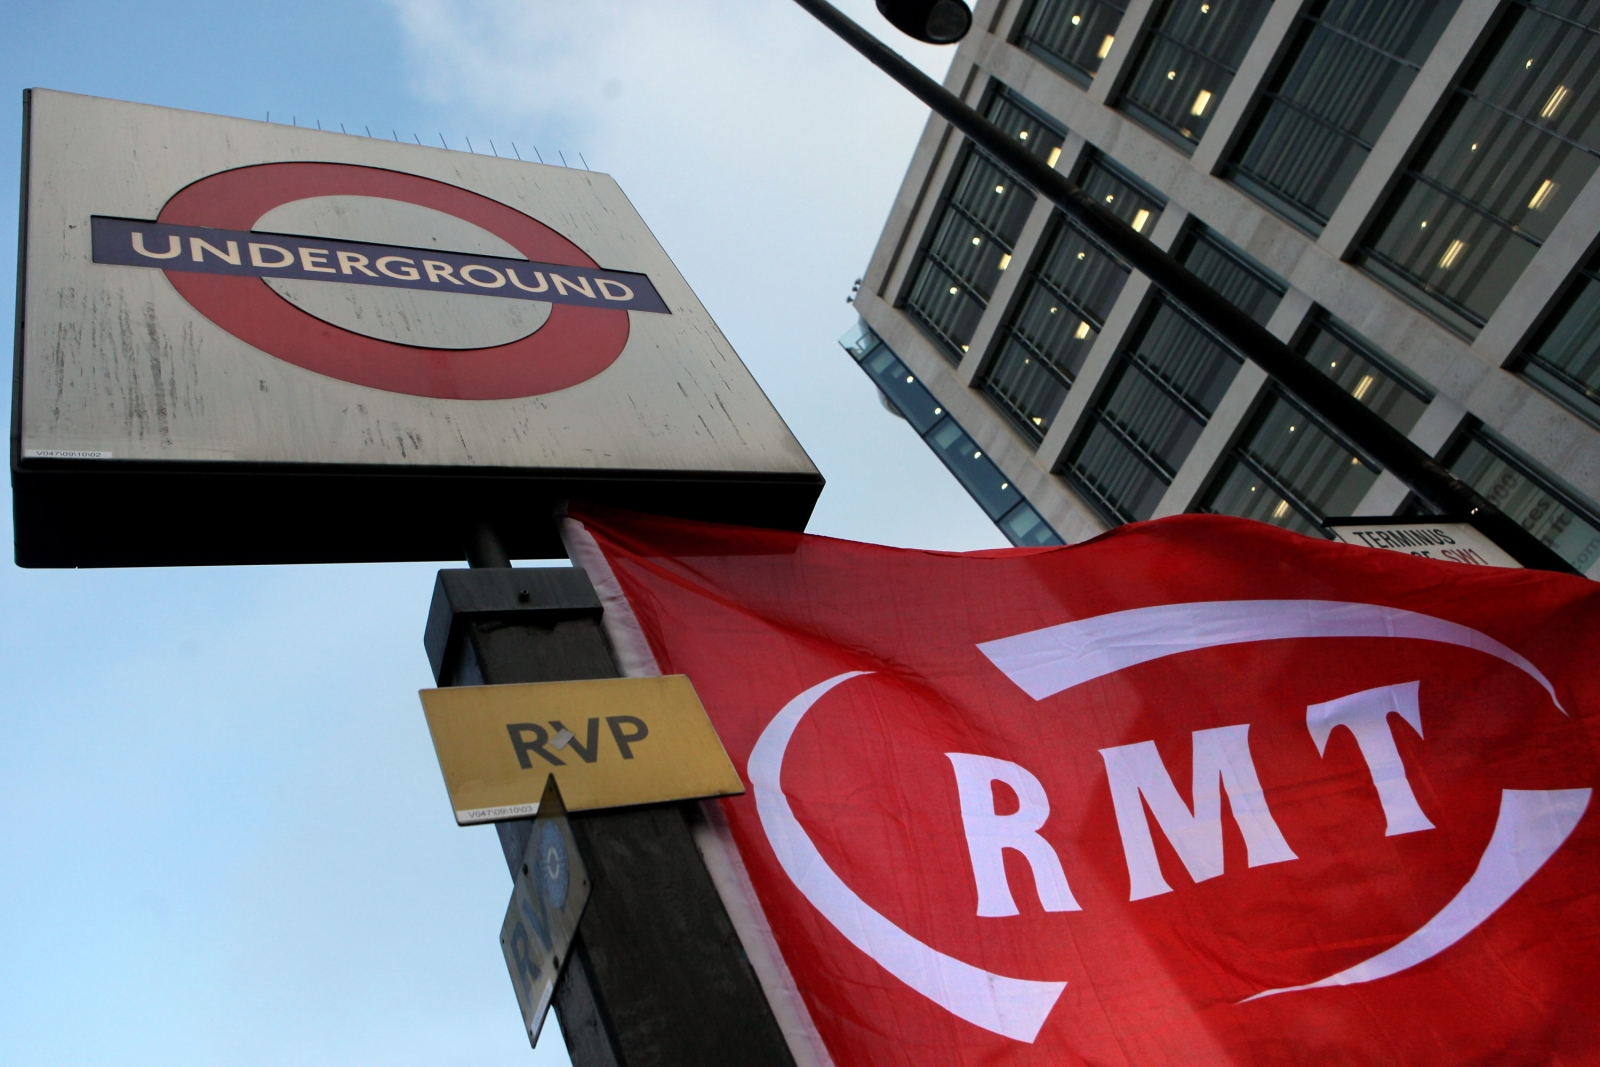 RMT tube union